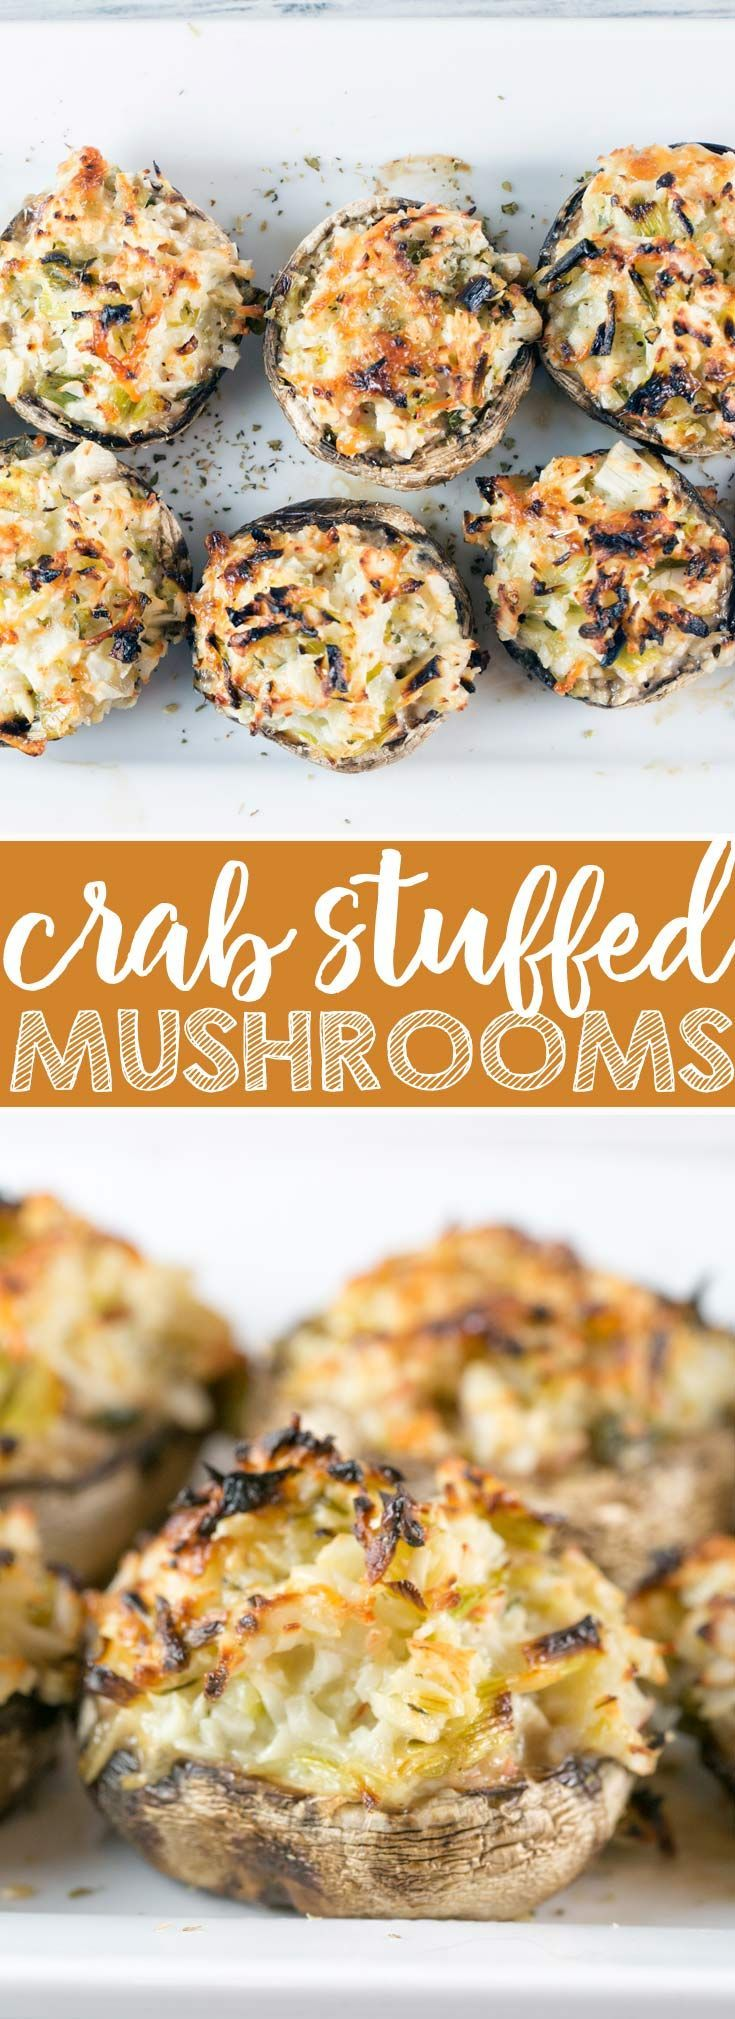 Crab Stuffed Mushrooms: perfect on the grill or baked in the oven, these make-ahead crab stuffed mushrooms are a perfect side or appetizer for your next party.  No breadcrumb filler means they're gluten free, too! {Bunsen Burner Bakery} via @bnsnbrnrbakery